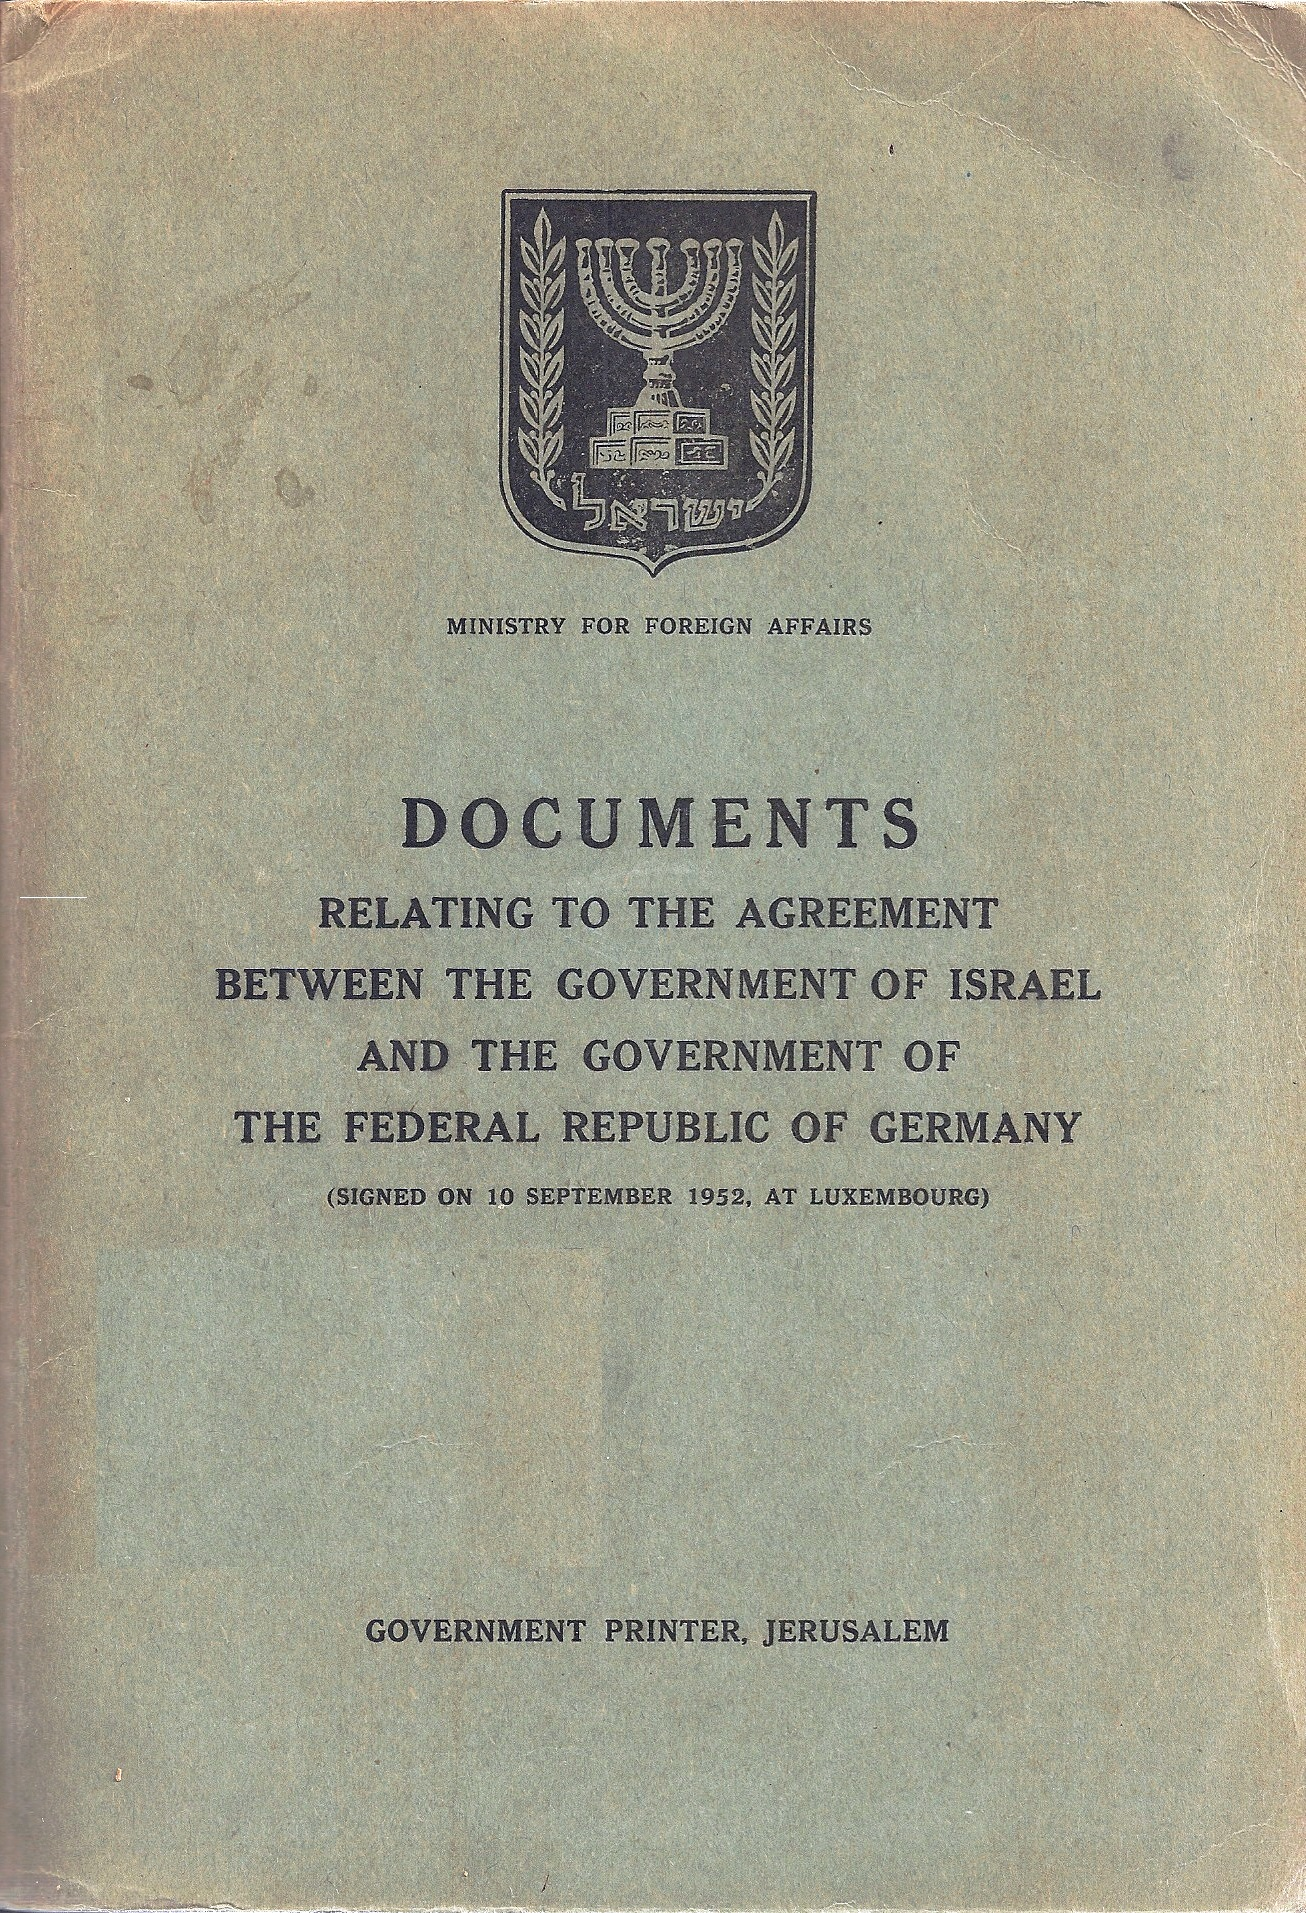 http://web.nli.org.il/sites/NLI/Hebrew/collections/personalsites/Israel-Germany/Division-of-Germany/PublishingImages/D%203%20-%202.jpg